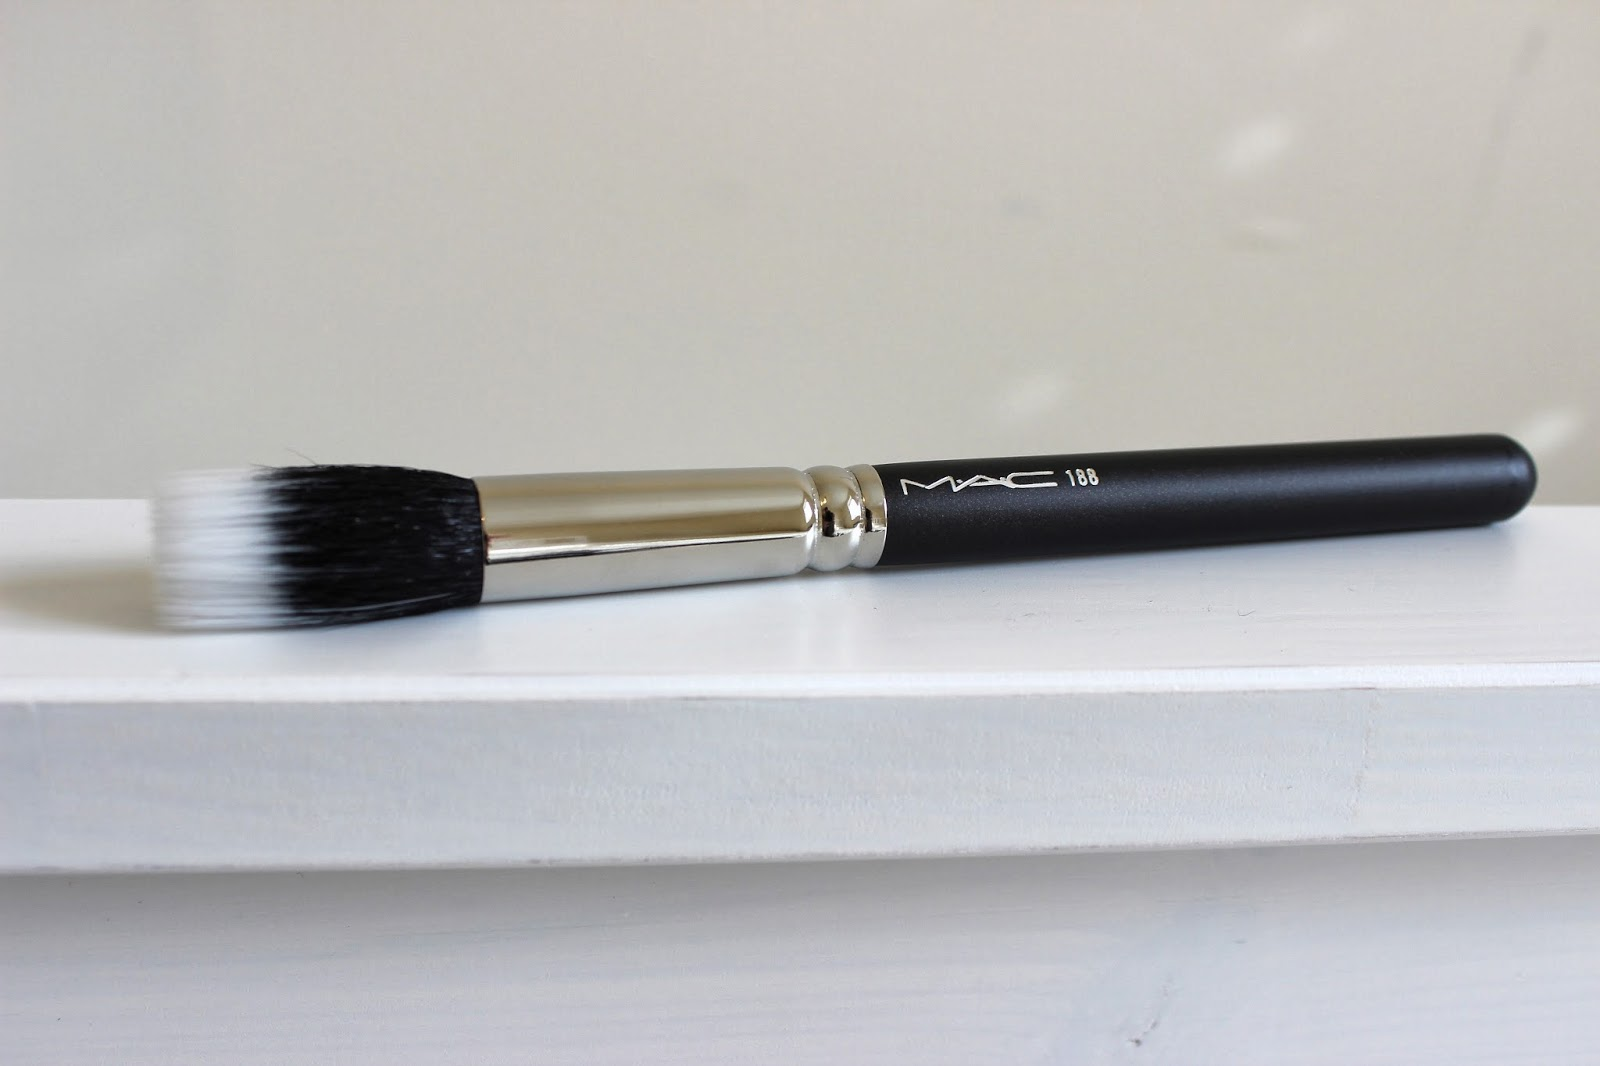 mac 188 brush